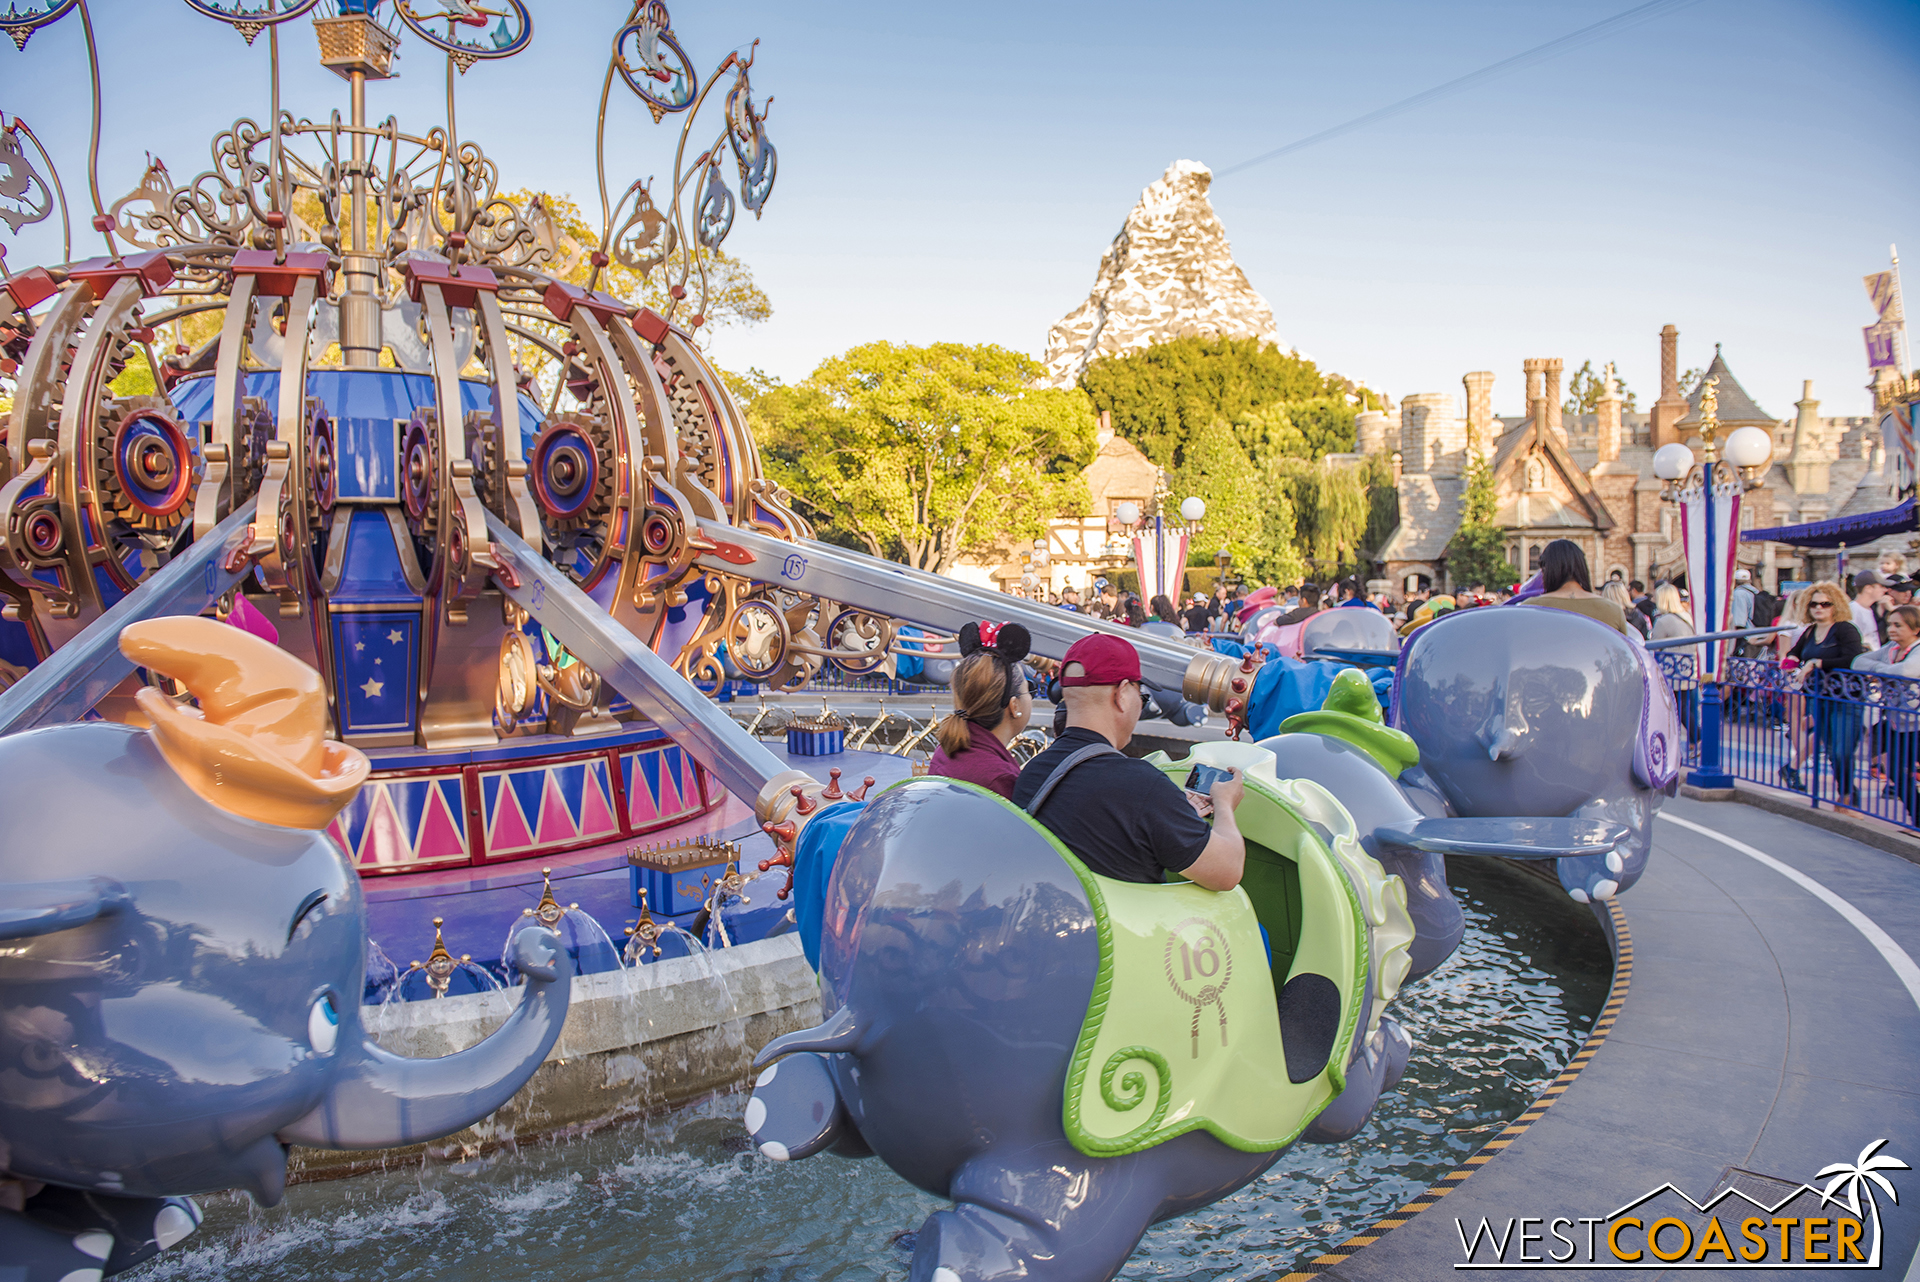 The ride looks great, and Dumbo's reopening means that once Pirates reopens later this month, all regular attractions at Disneyland Park are now back open to normal operating schedule!